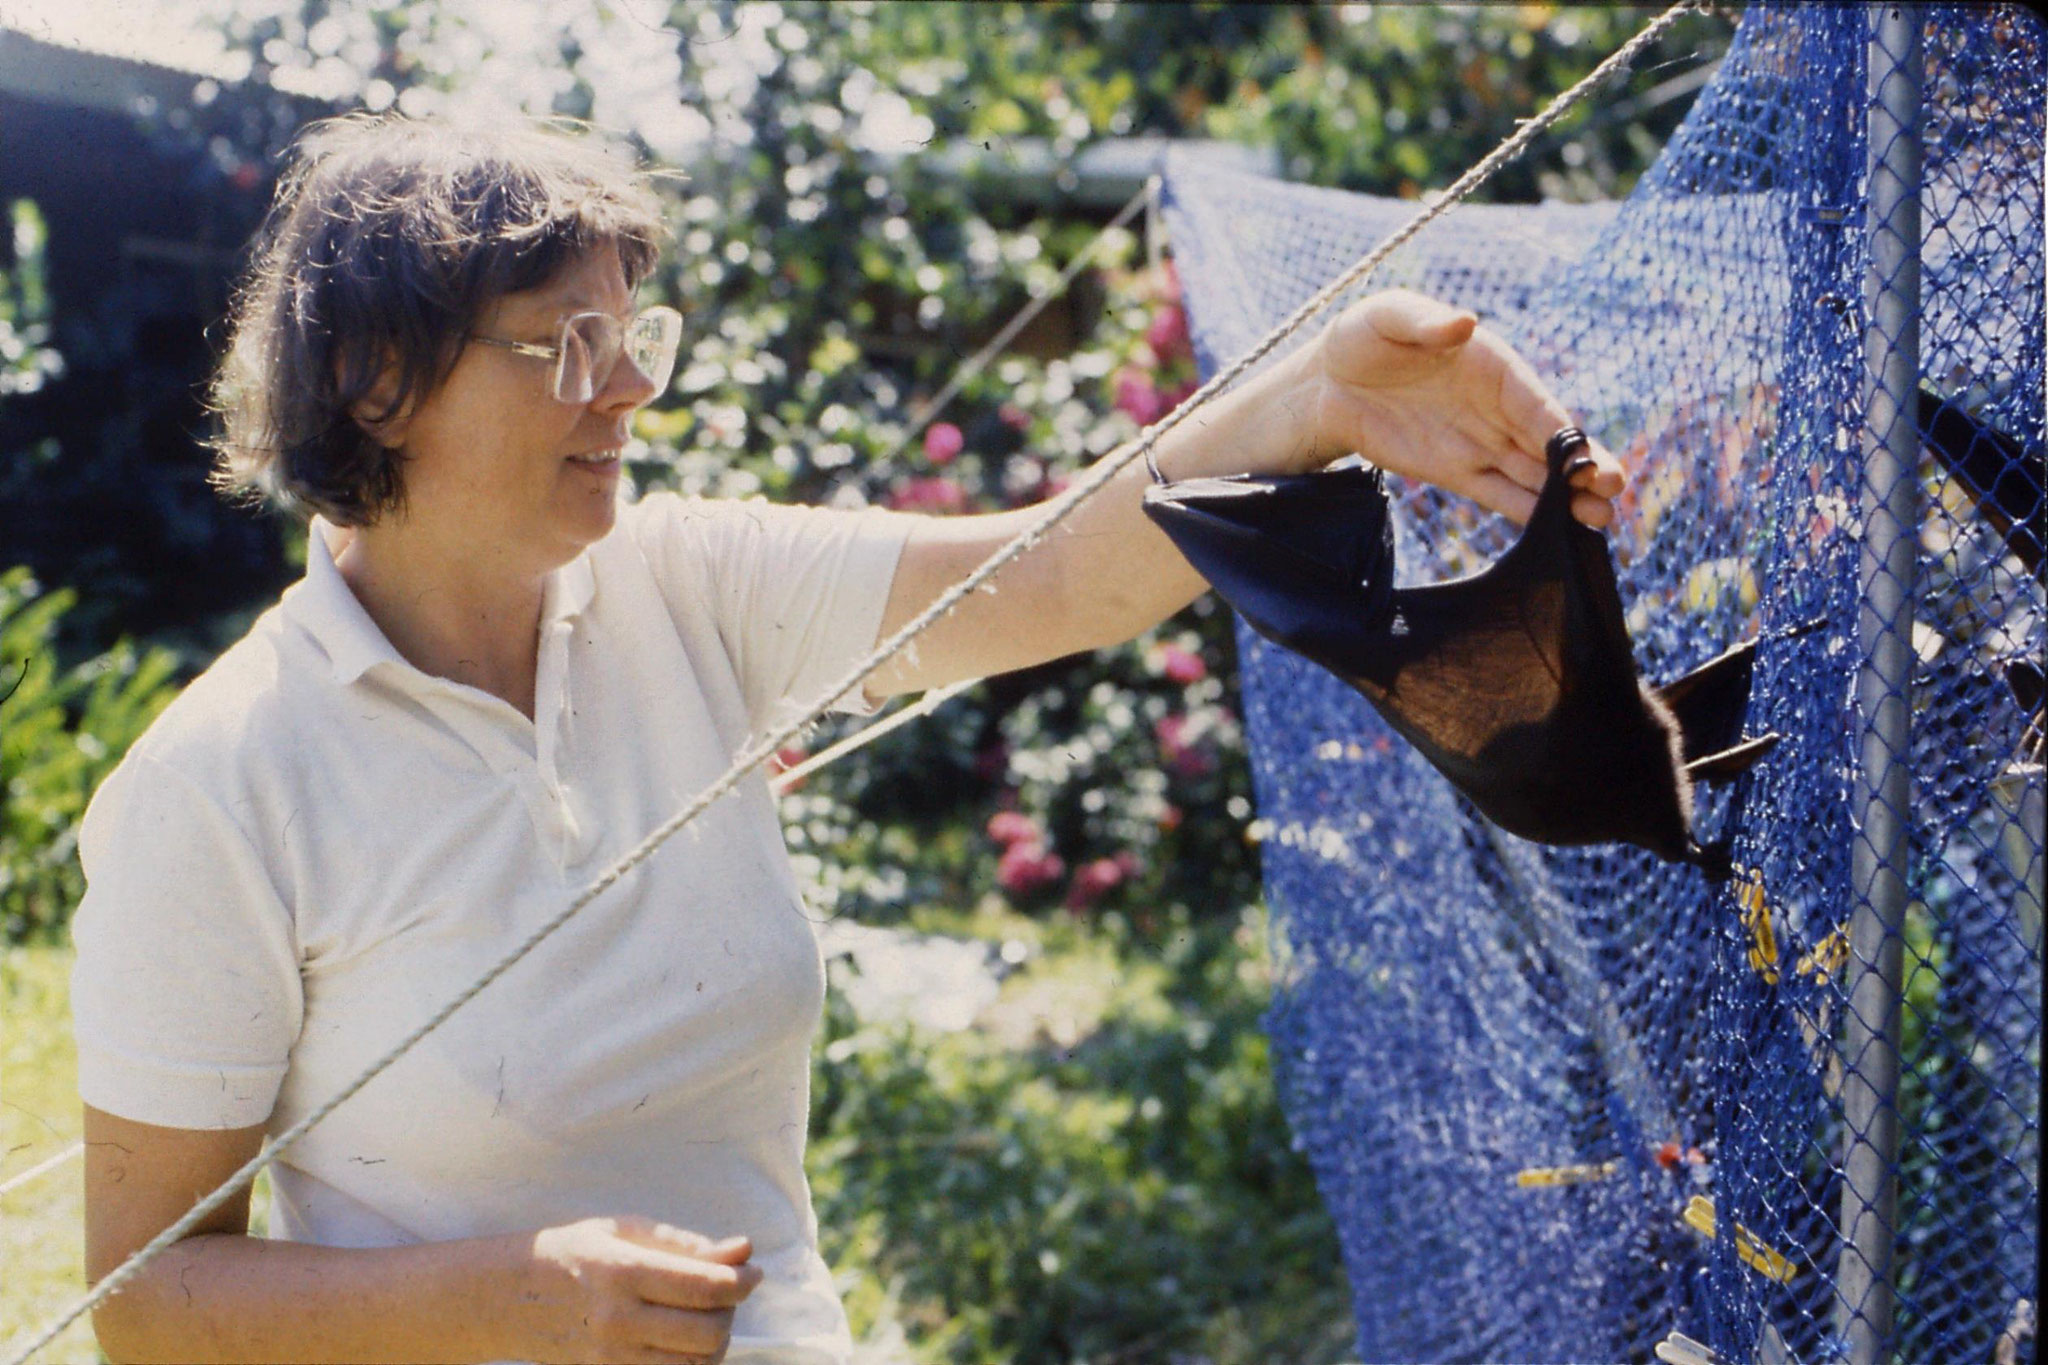 27/10/1990: 21: Cape Tribulation, flying foxes at High and Brigitta's place in Cairns